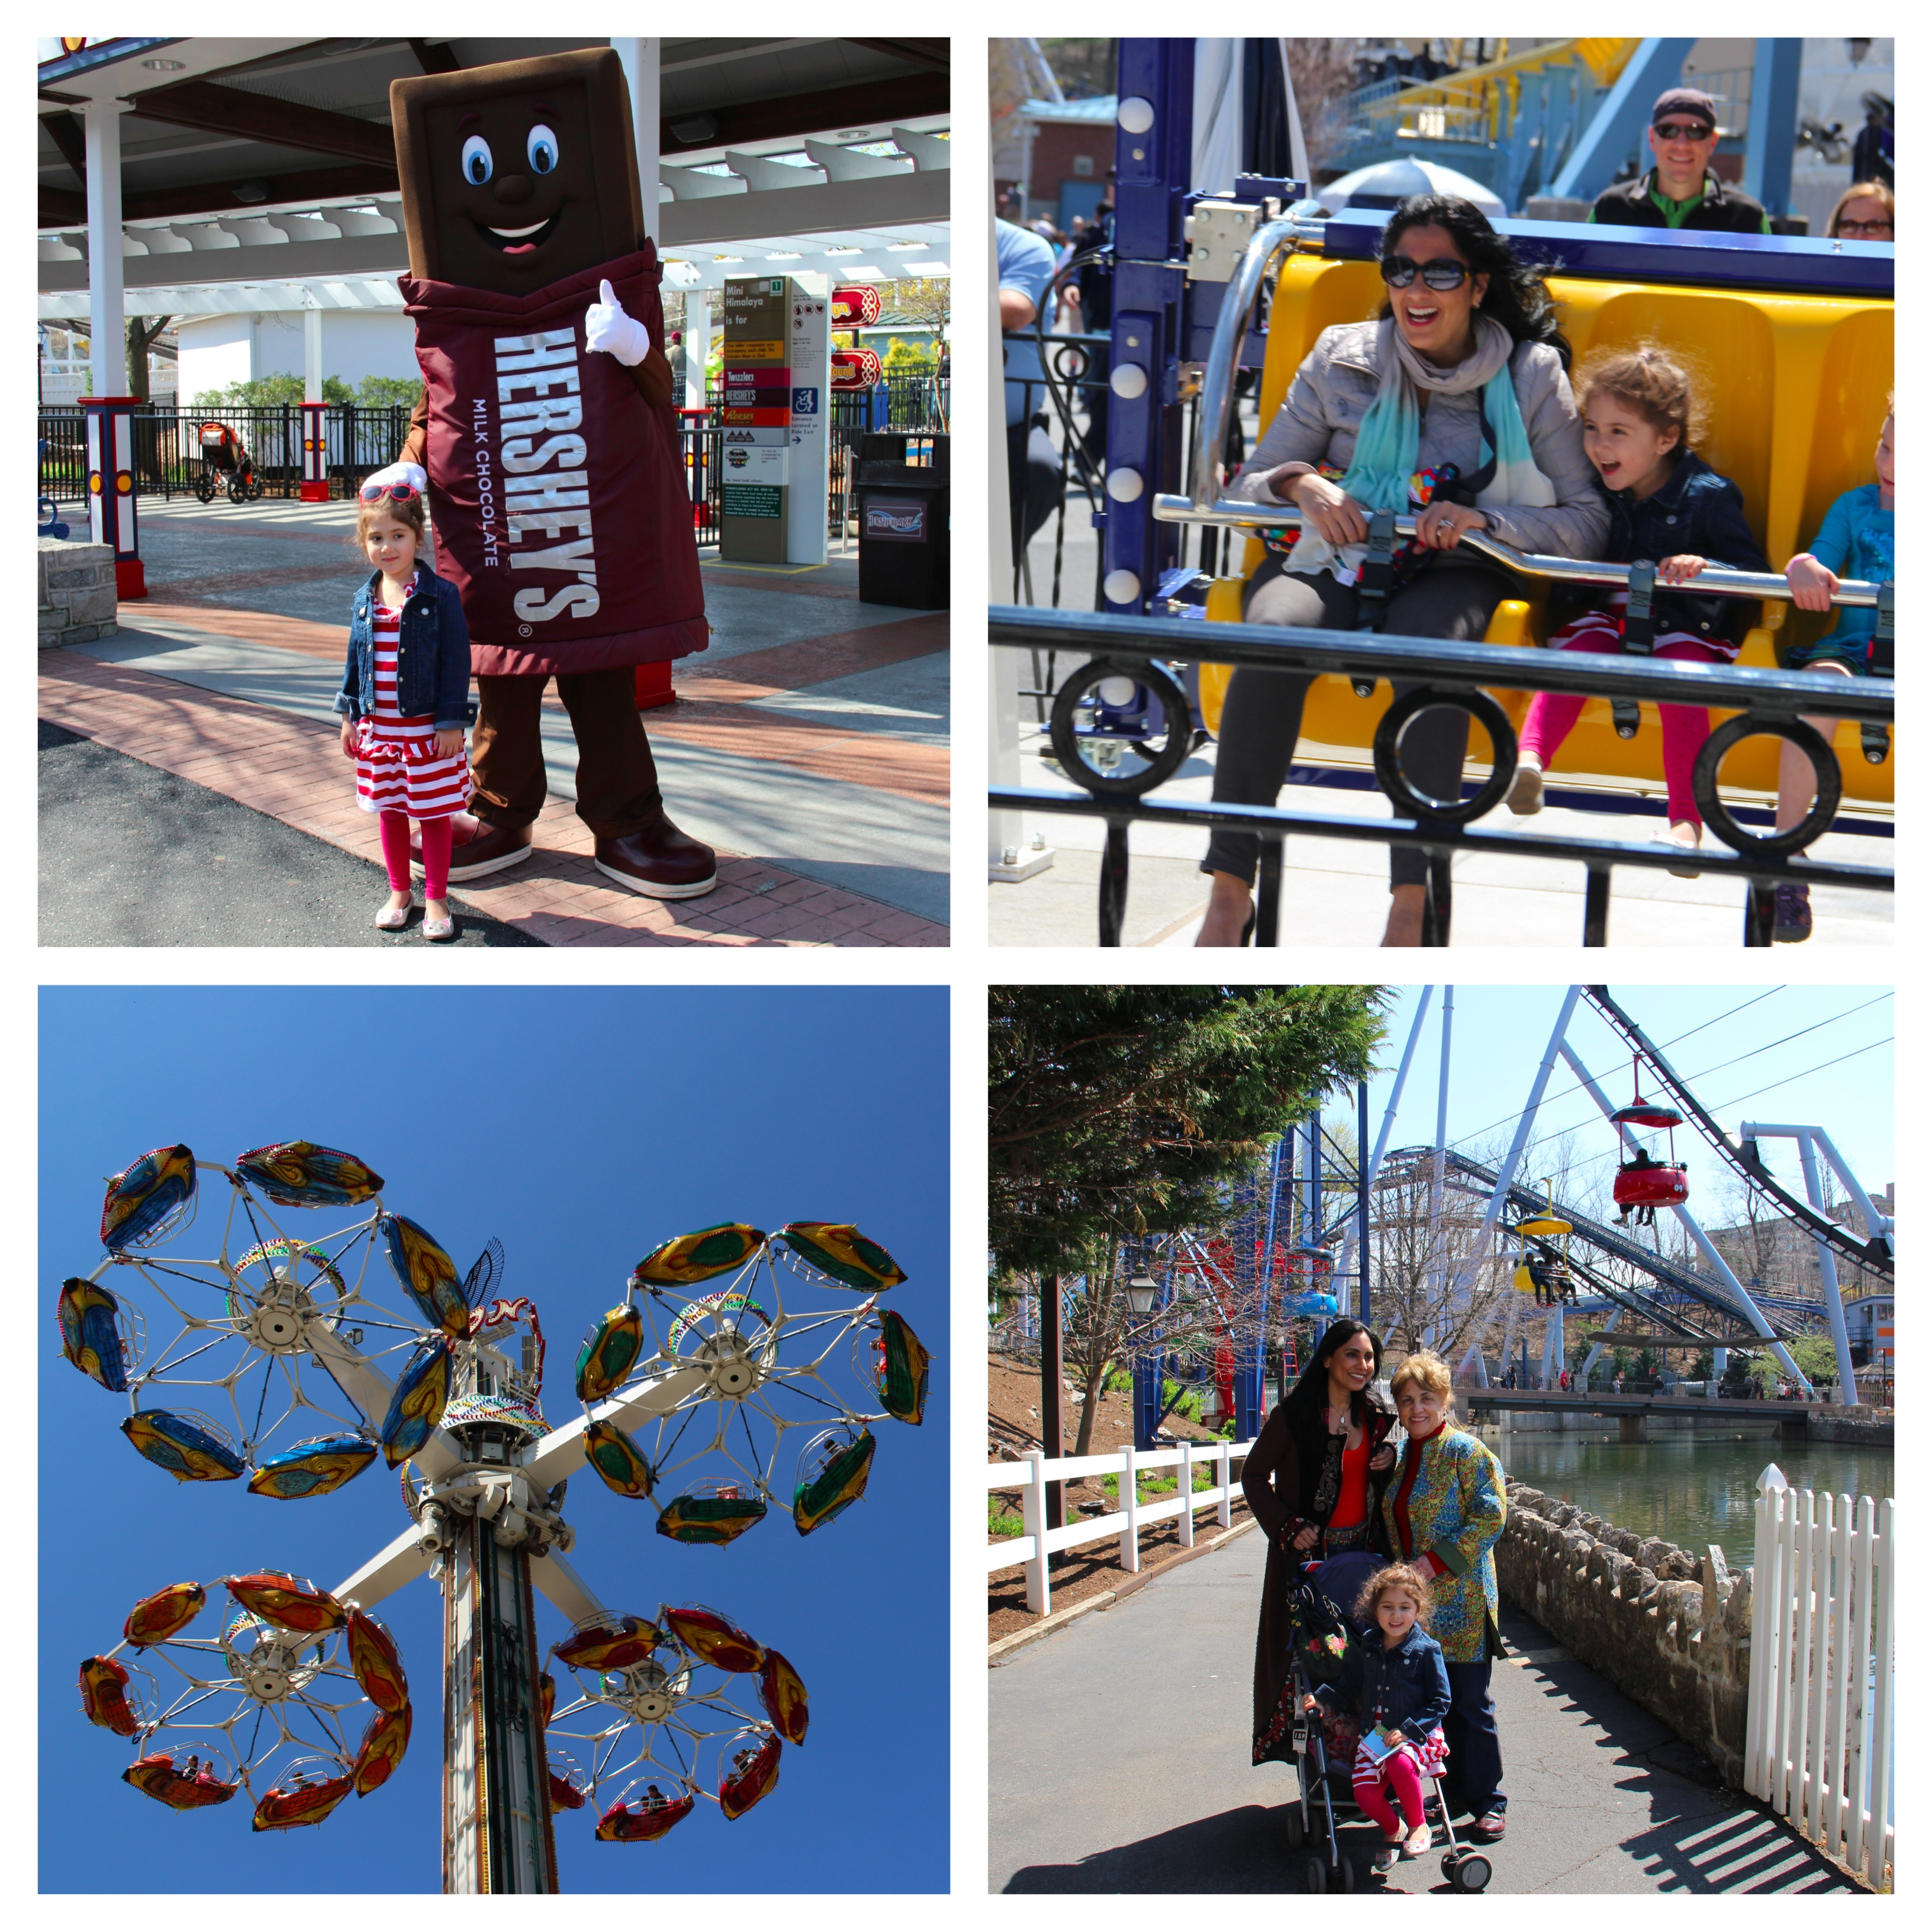 Top 10 Family Friendly Things To Do In Hershey Pennsylvania